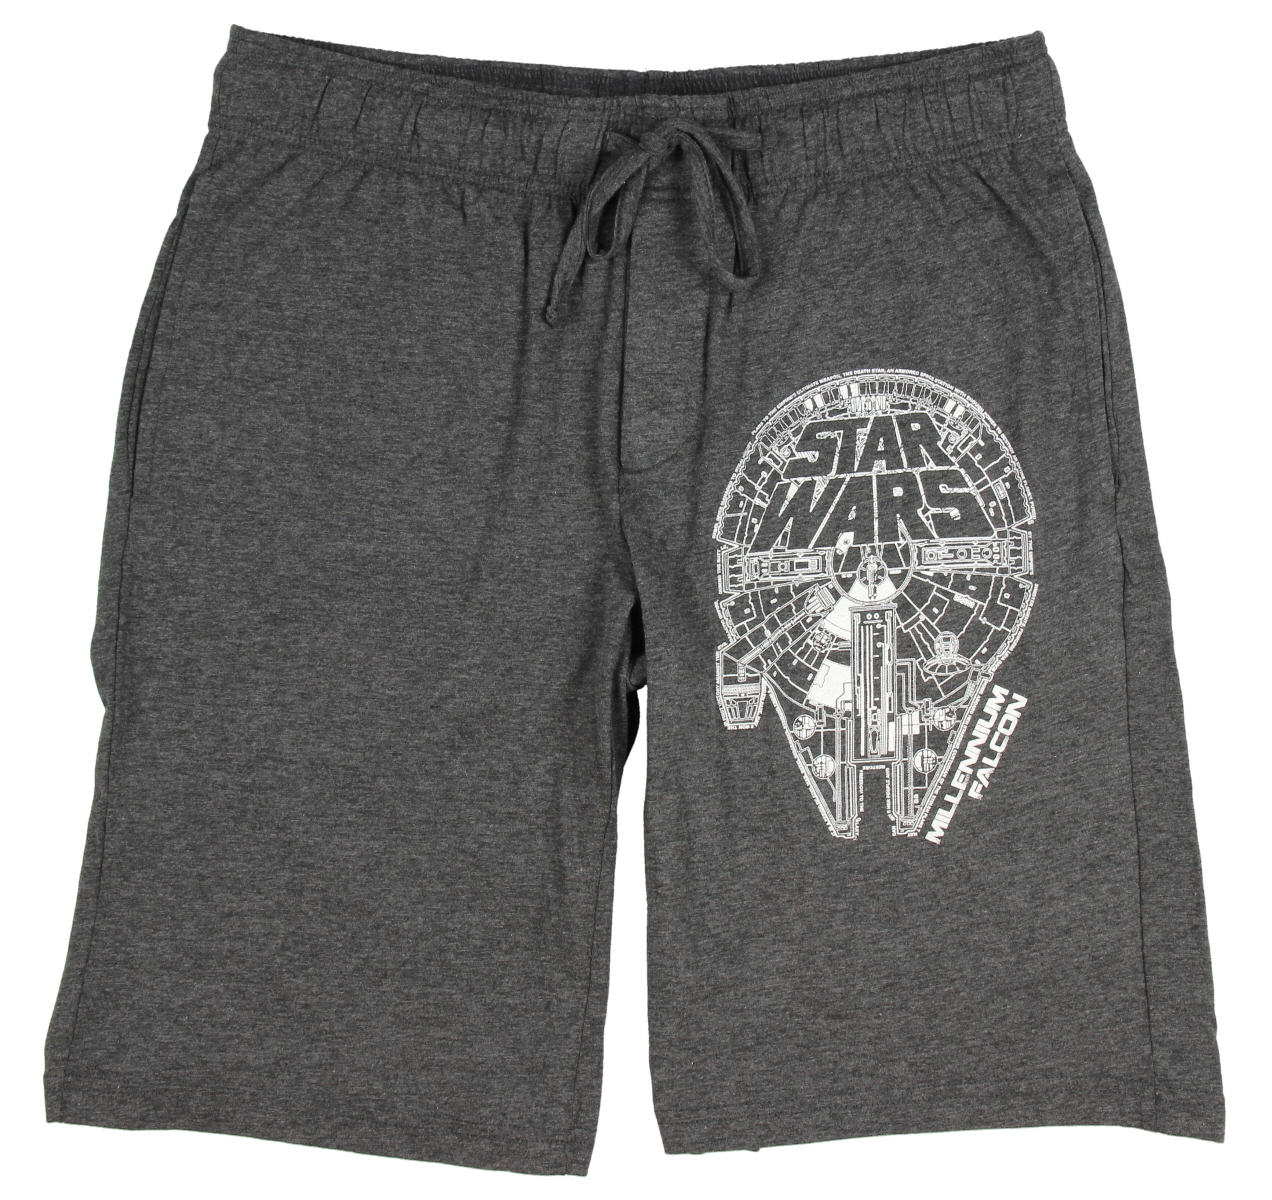 Star Wars Mens Lounge Bottom Shorts